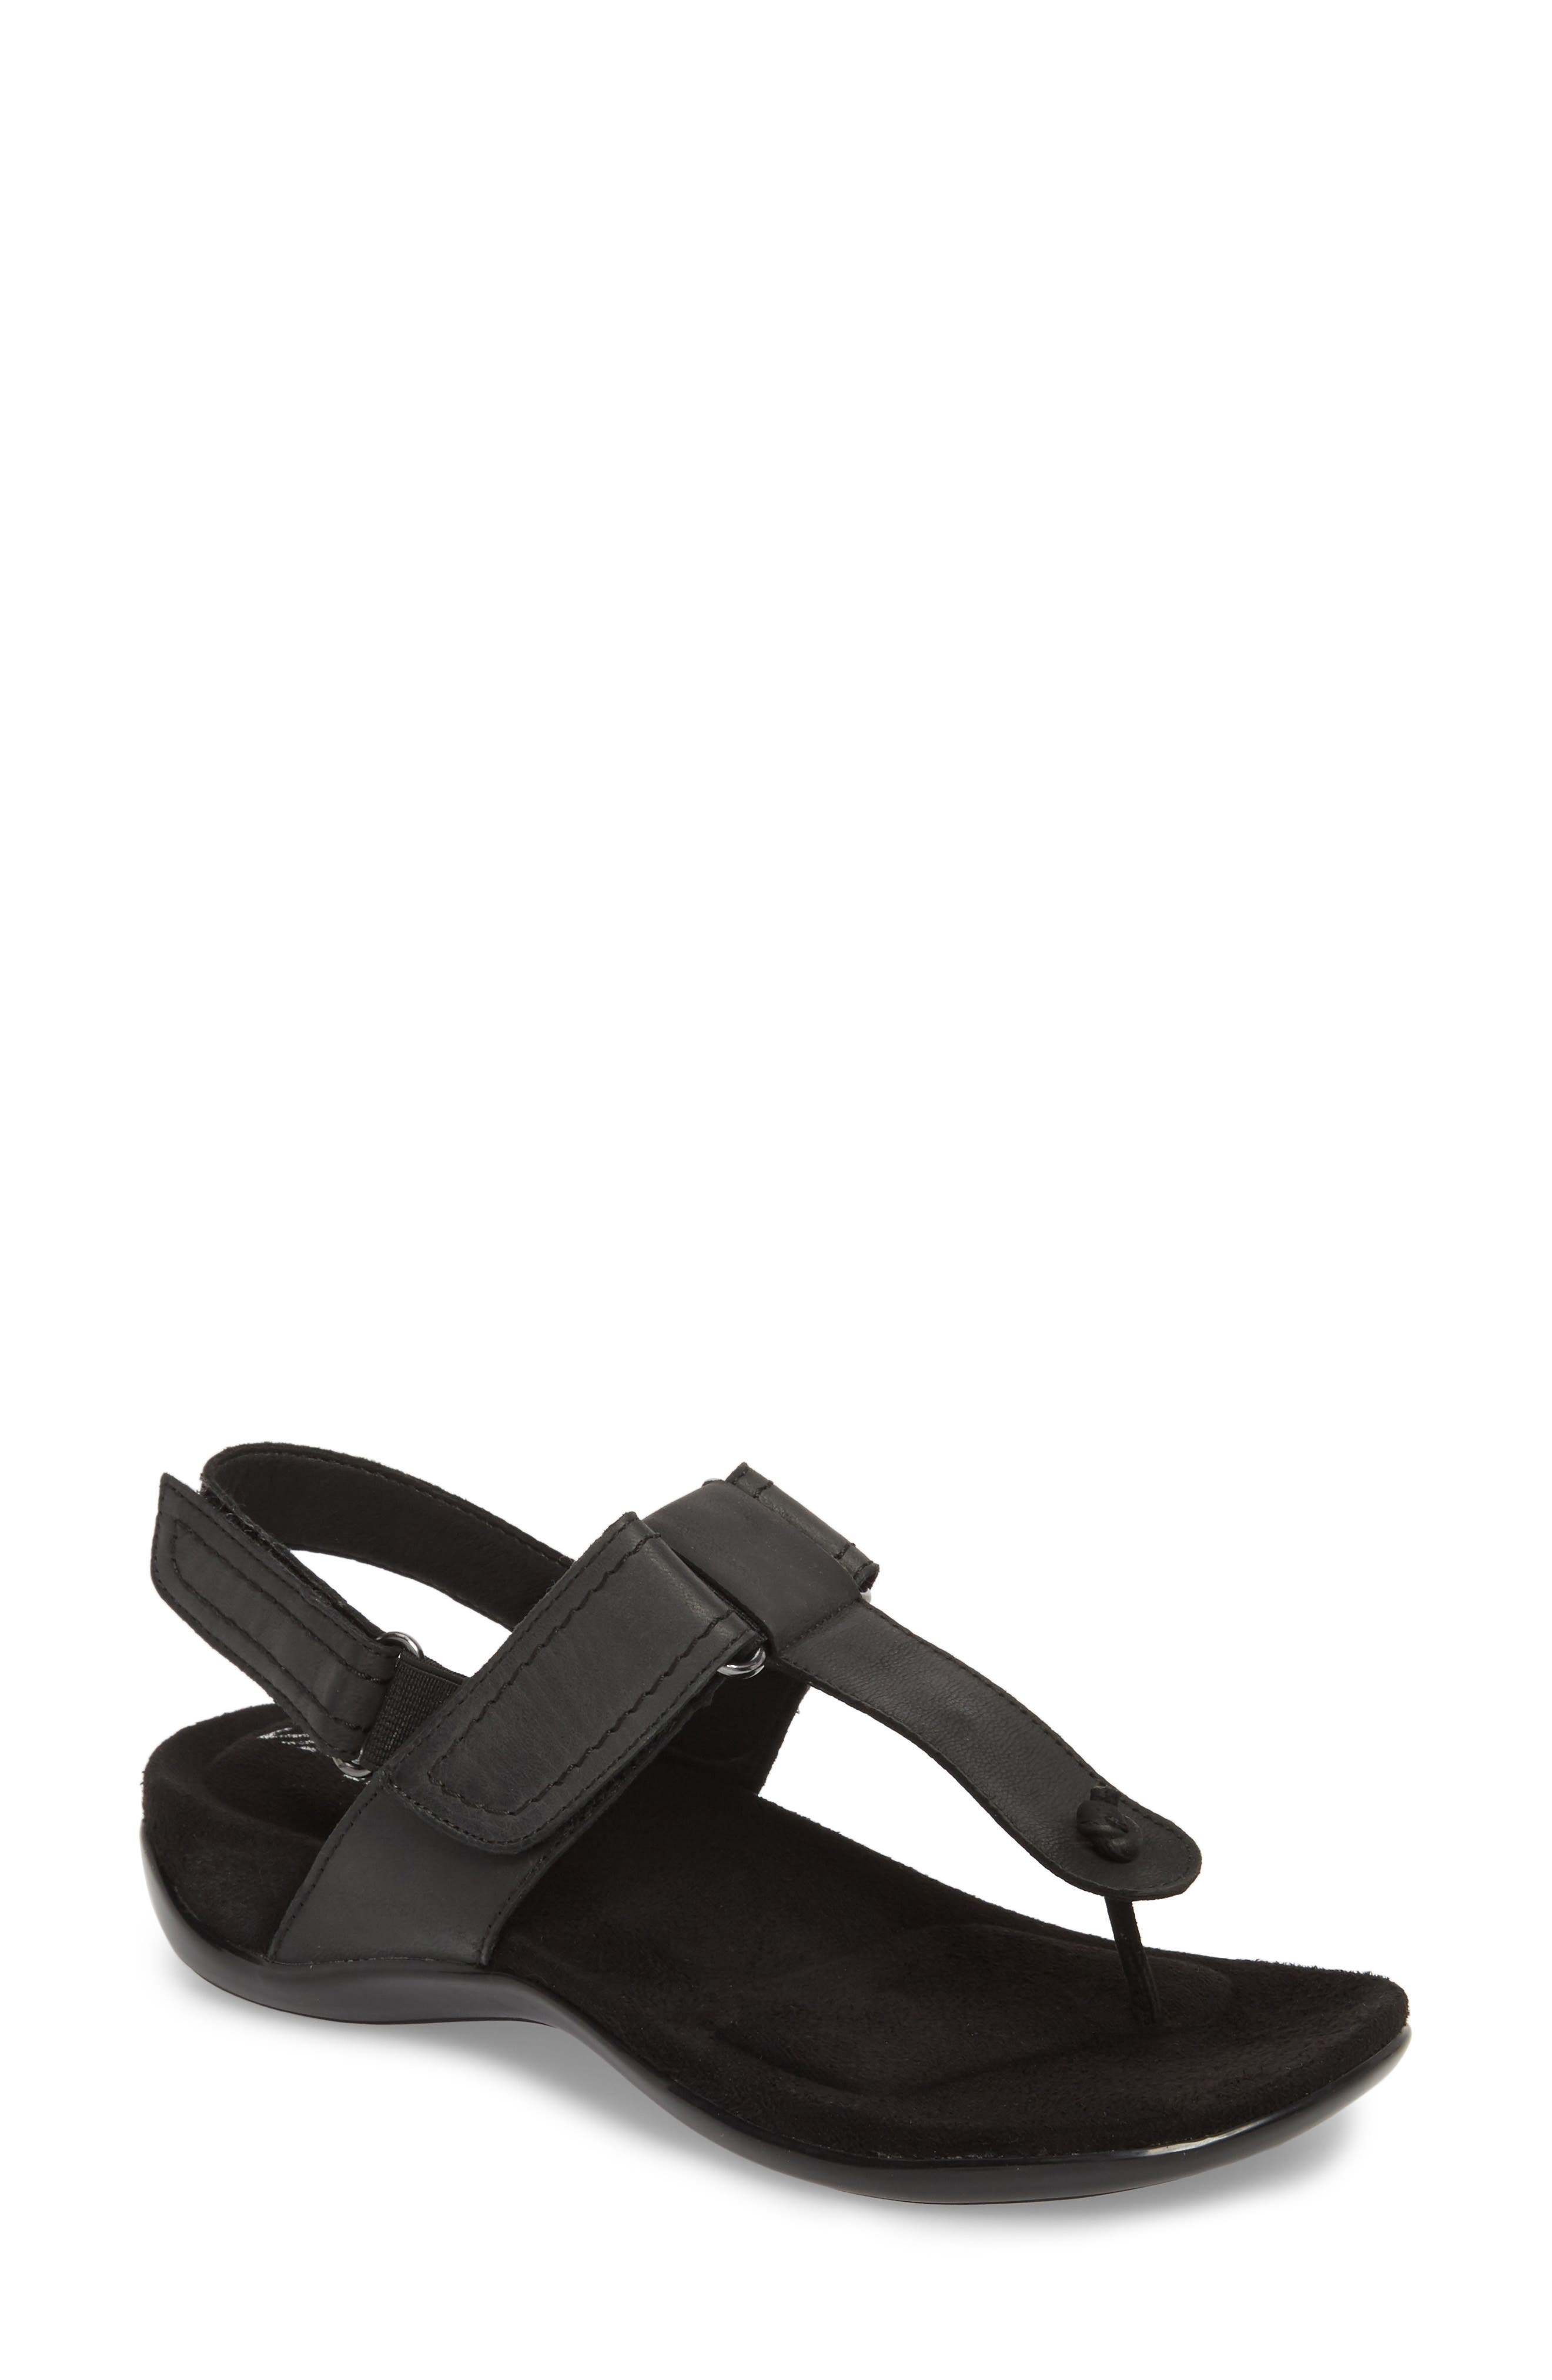 Valley Sandal,                         Main,                         color, Black Leather